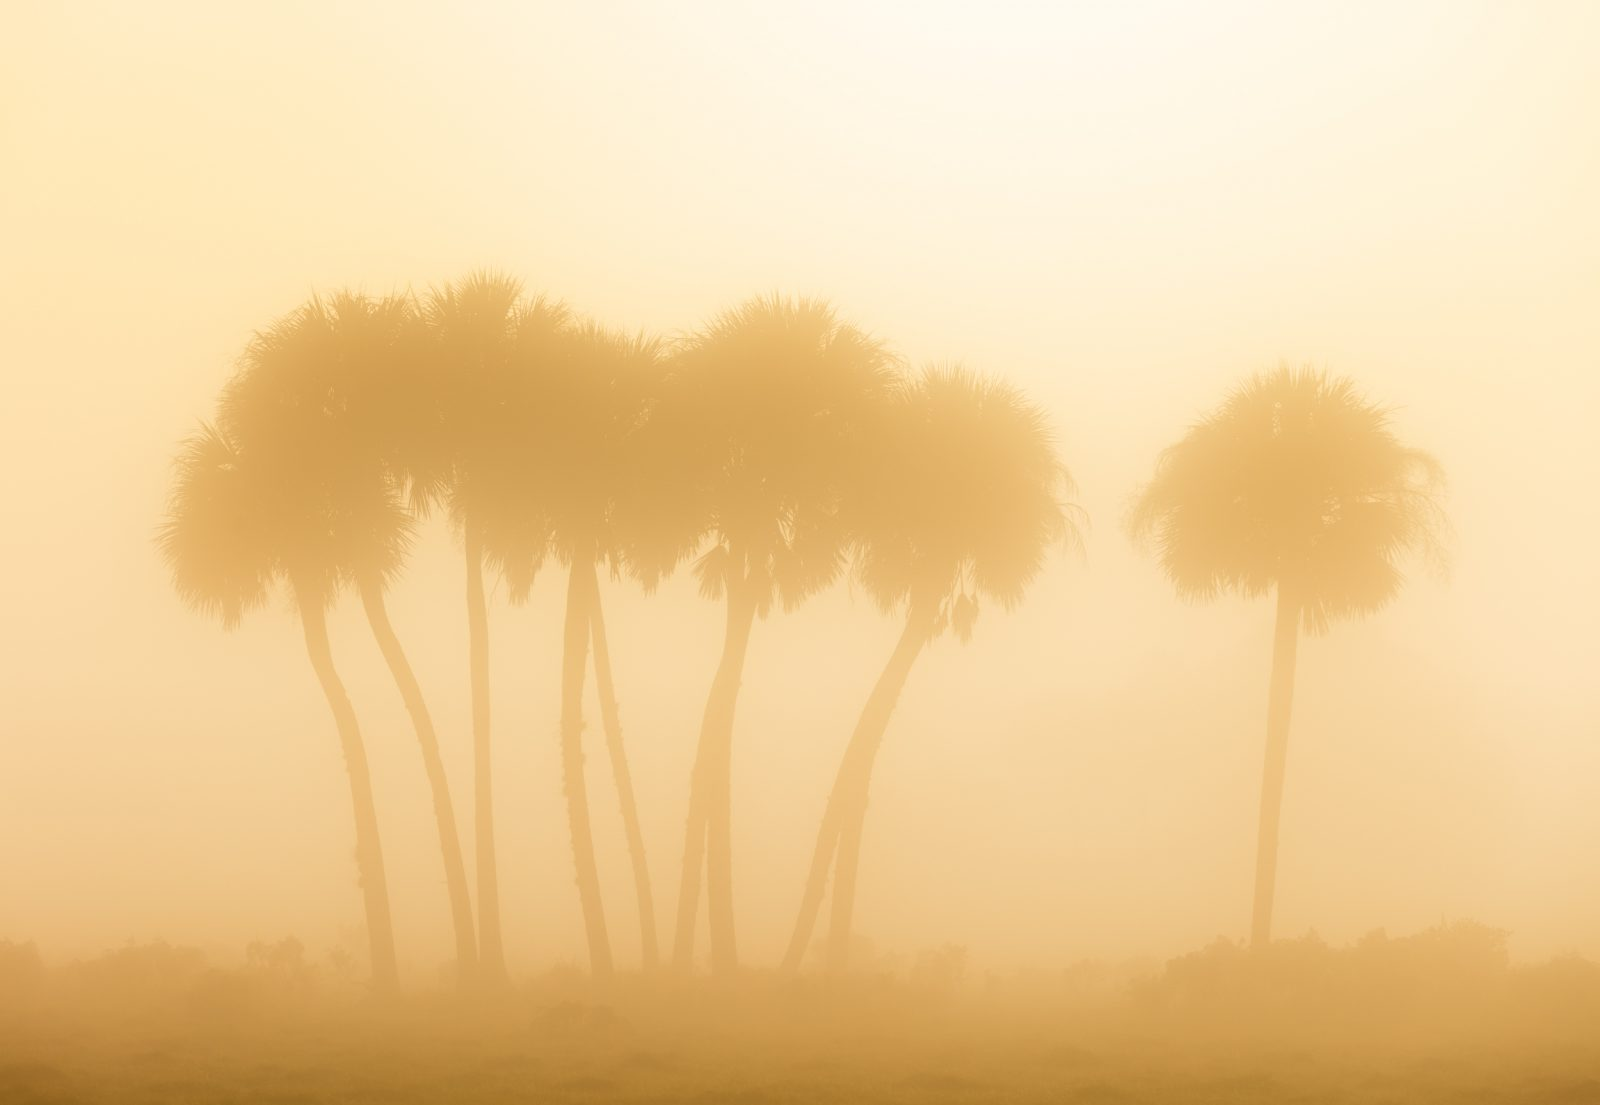 Sables in the Mist